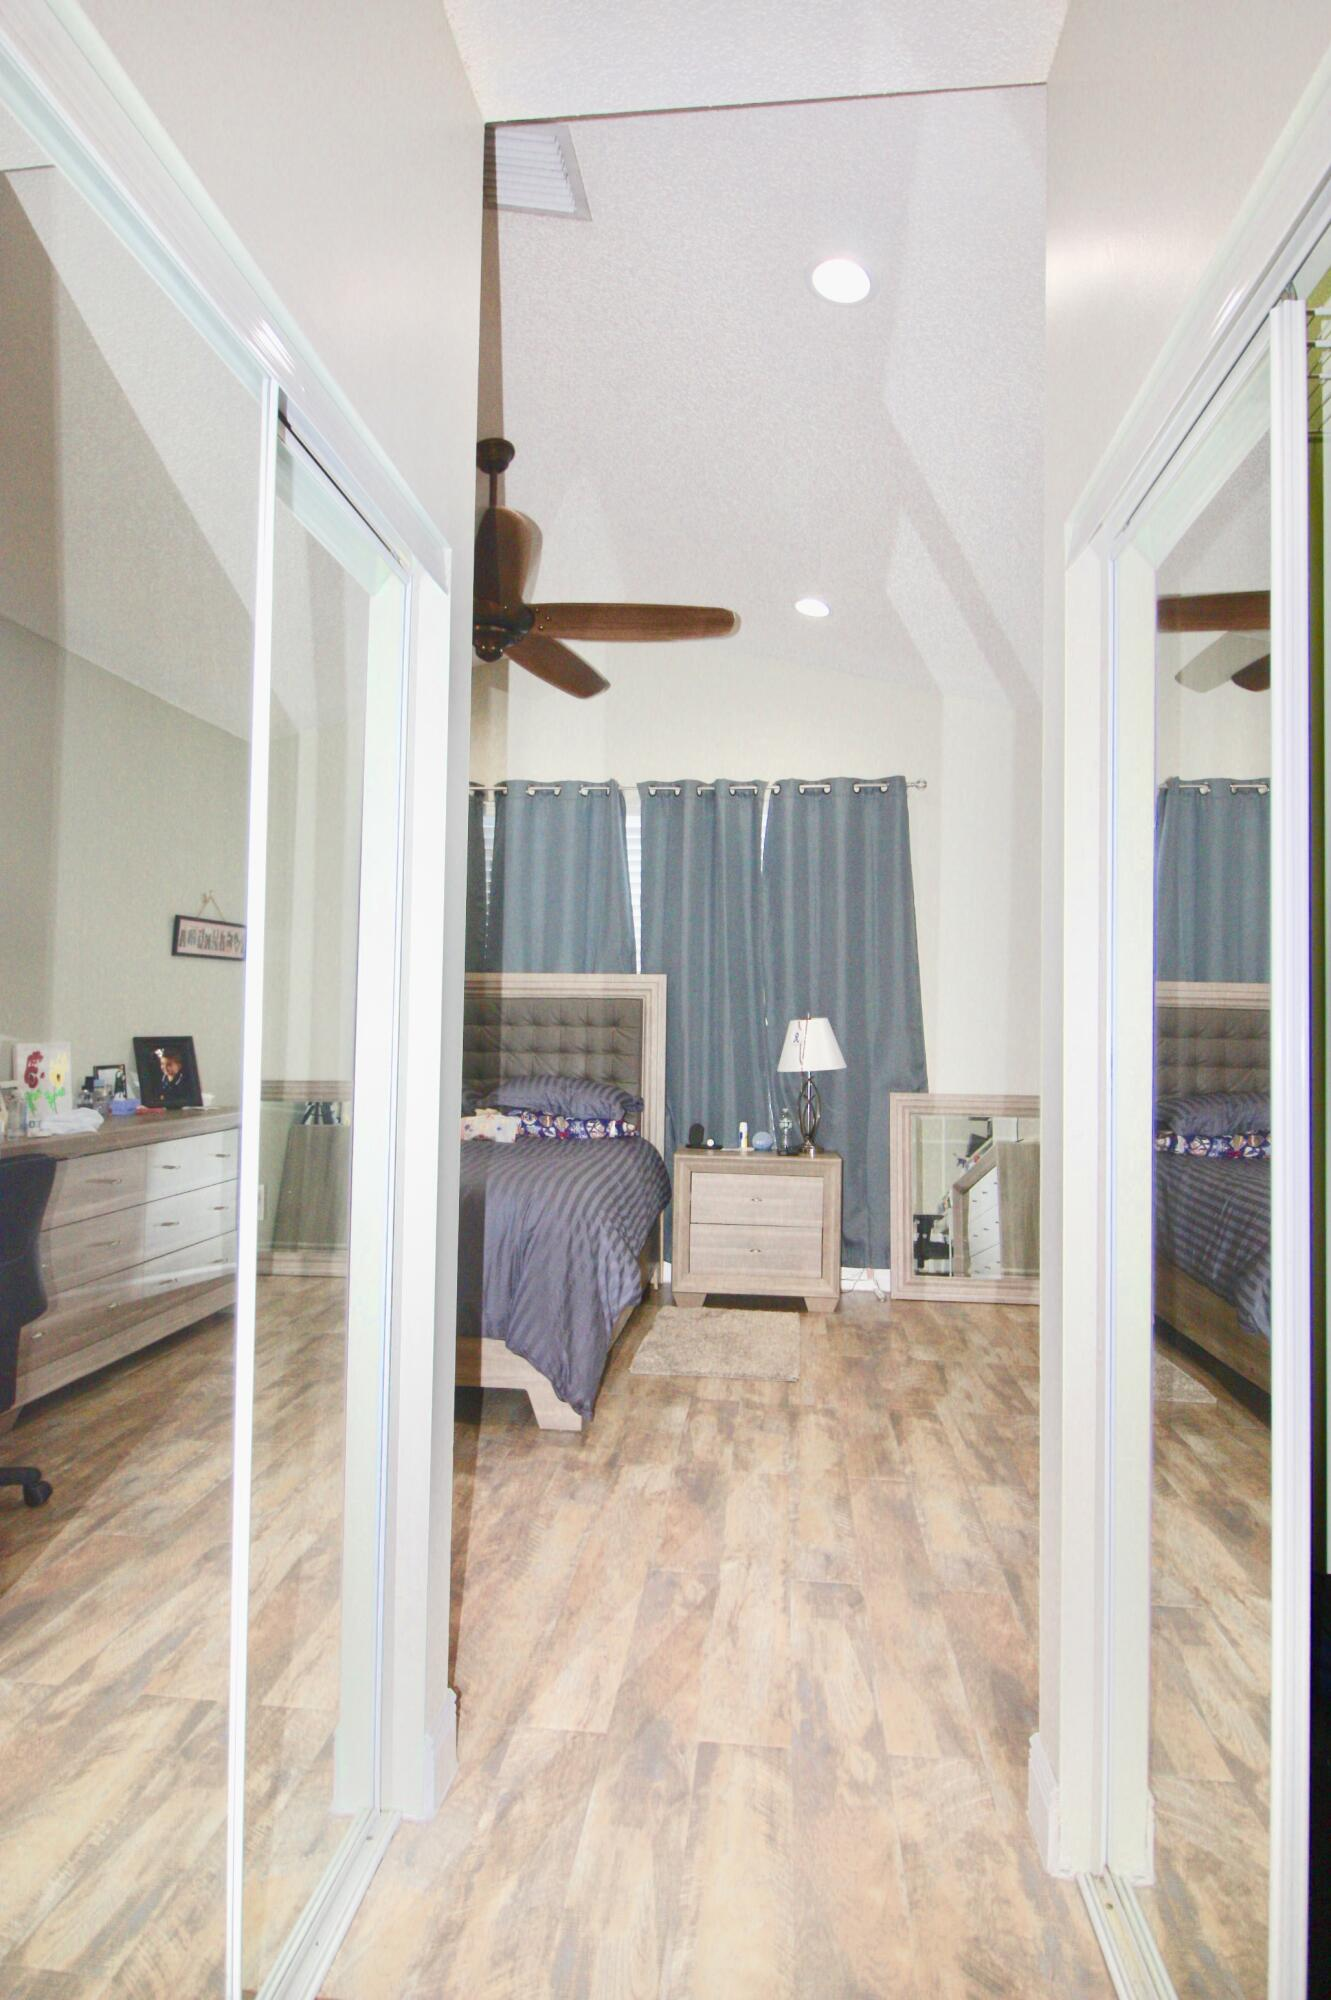 DUAL WALK-IN CLOSETS WITH MIRRORS